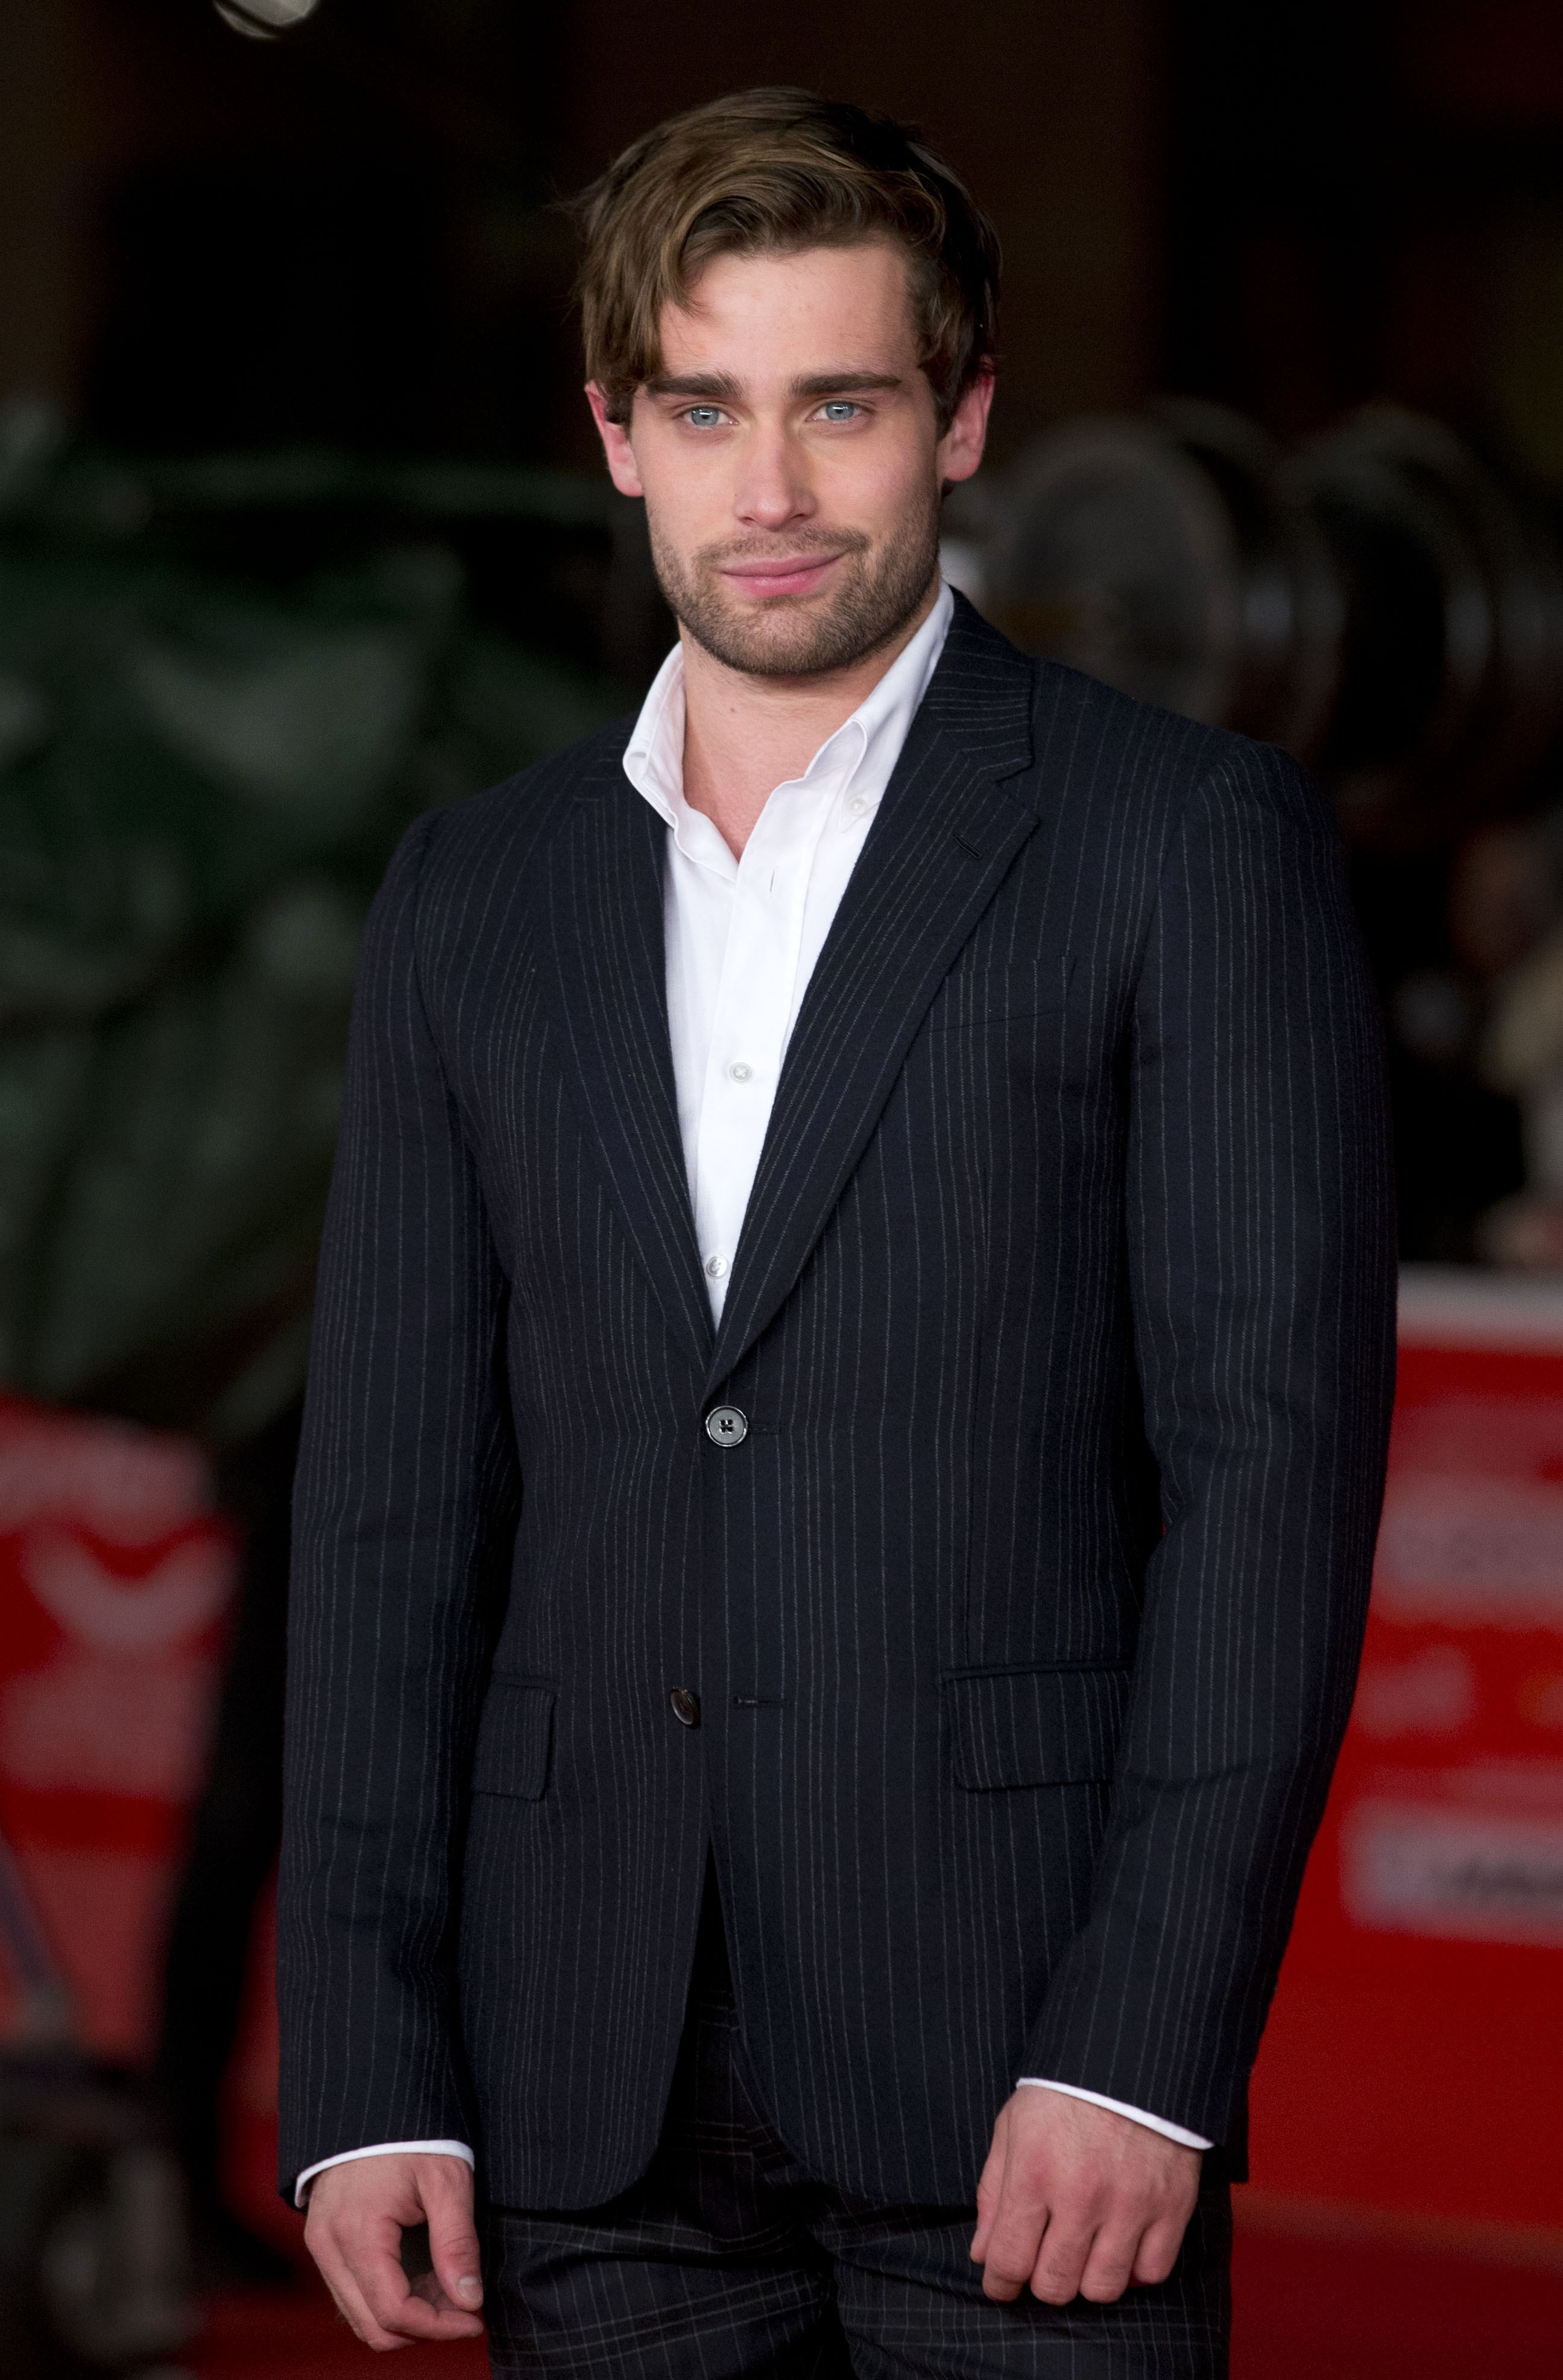 Christian Cooke   Known people - famous people news and ...